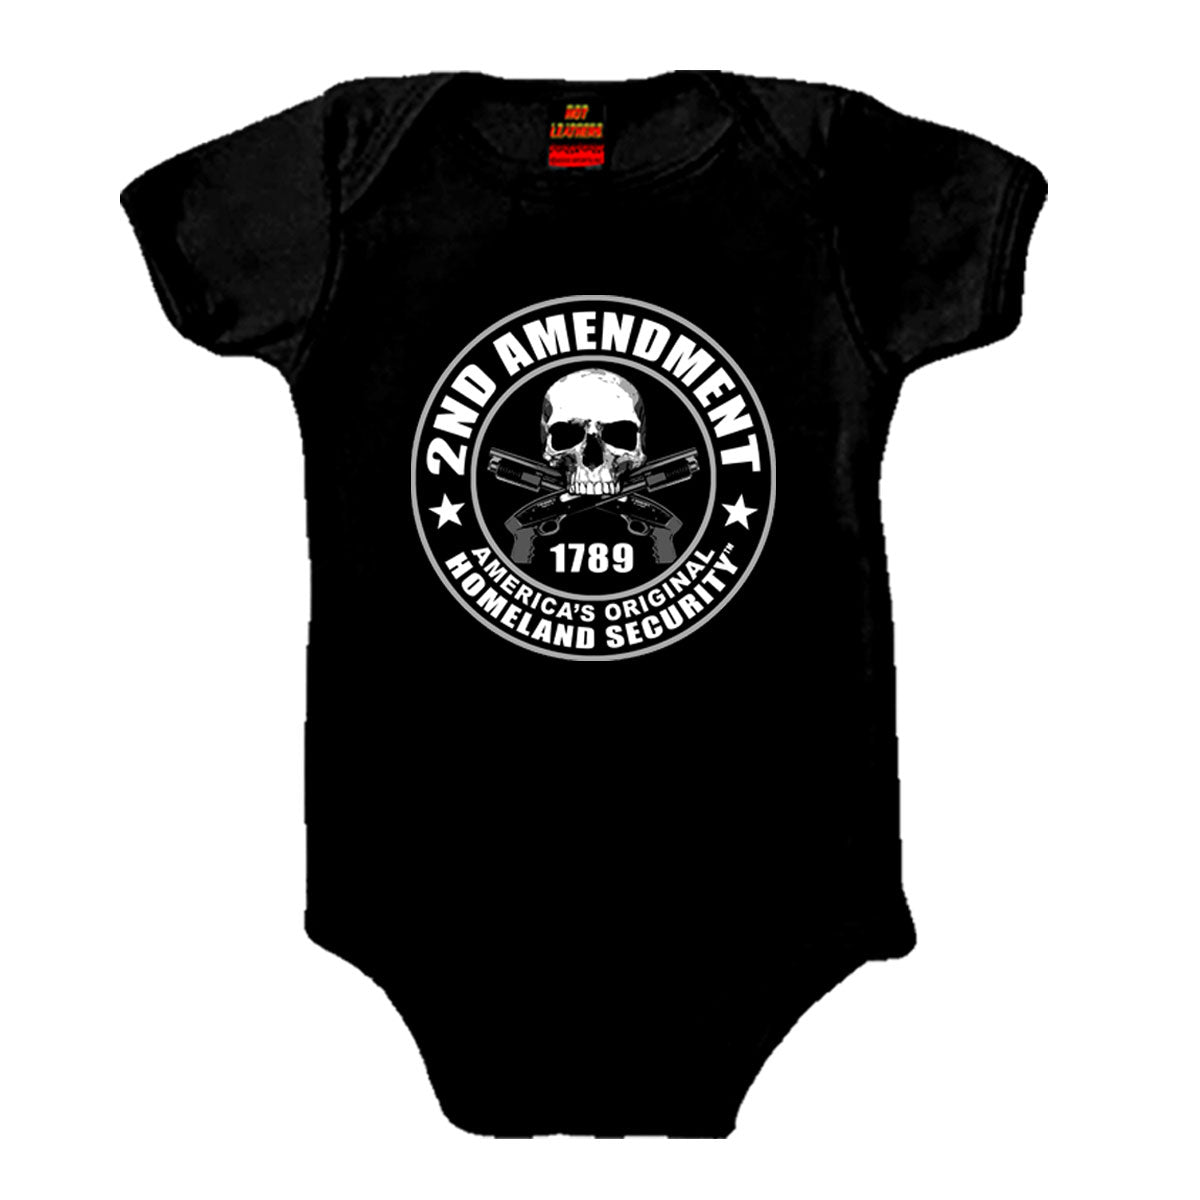 Hot Leathers 2nd Amendment America's Original Homeland Security Baby Body Suit